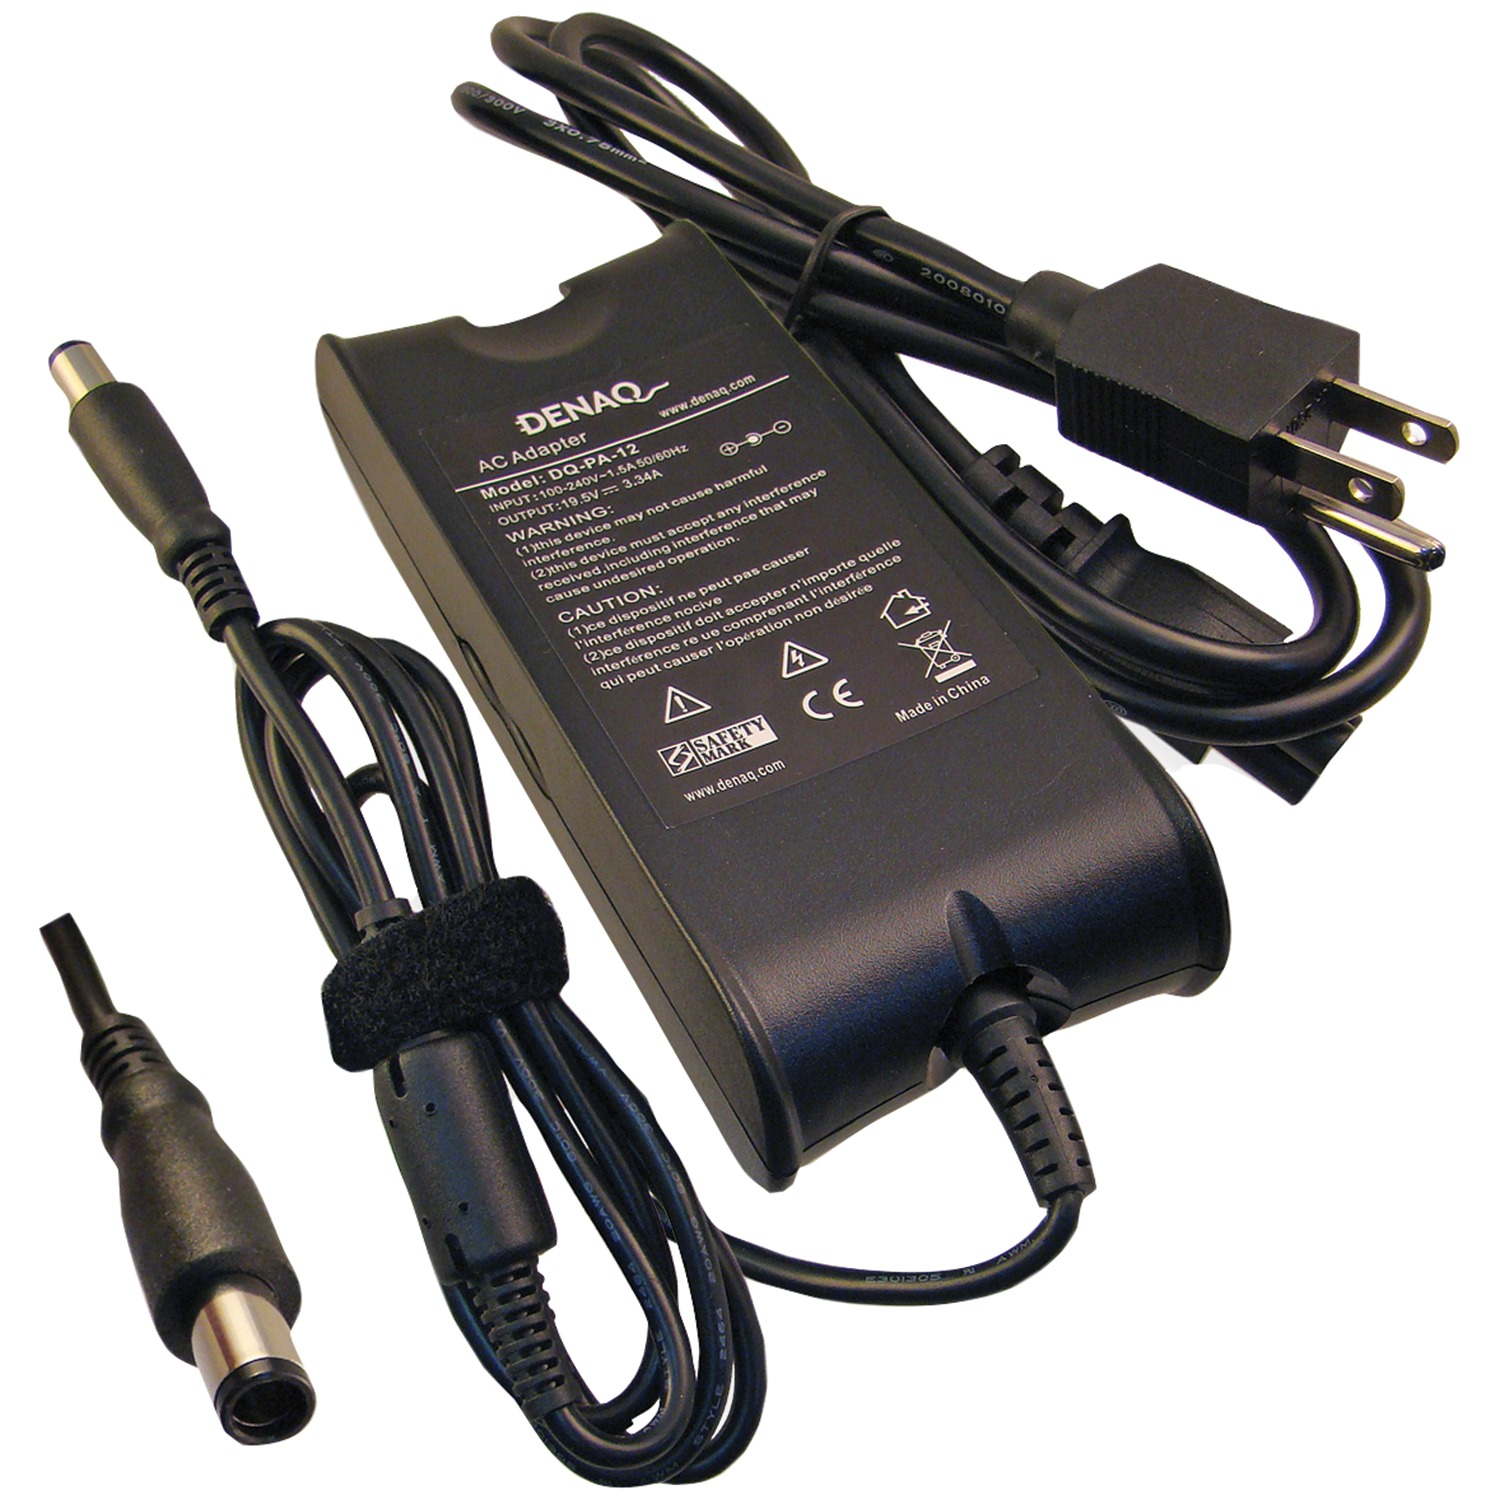 Denaq DQ-PA-12-7450 19.5-Volt DQ-PA-12-7450 Replacement AC Adapter for Dell Laptops